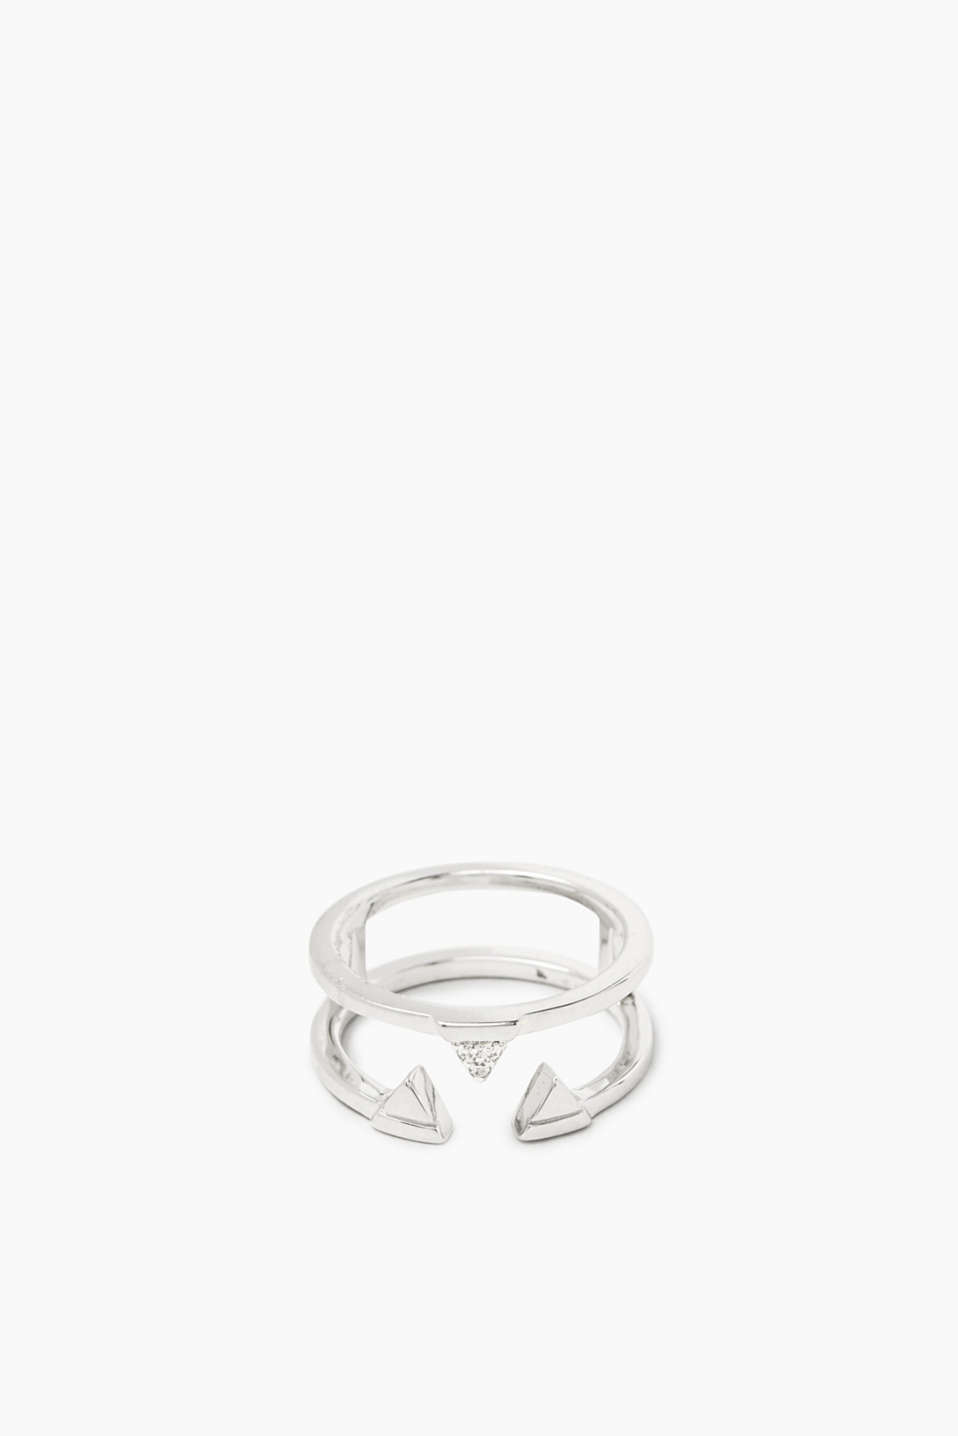 The graphic details and the zirconia trim make this ring a modern accessory.